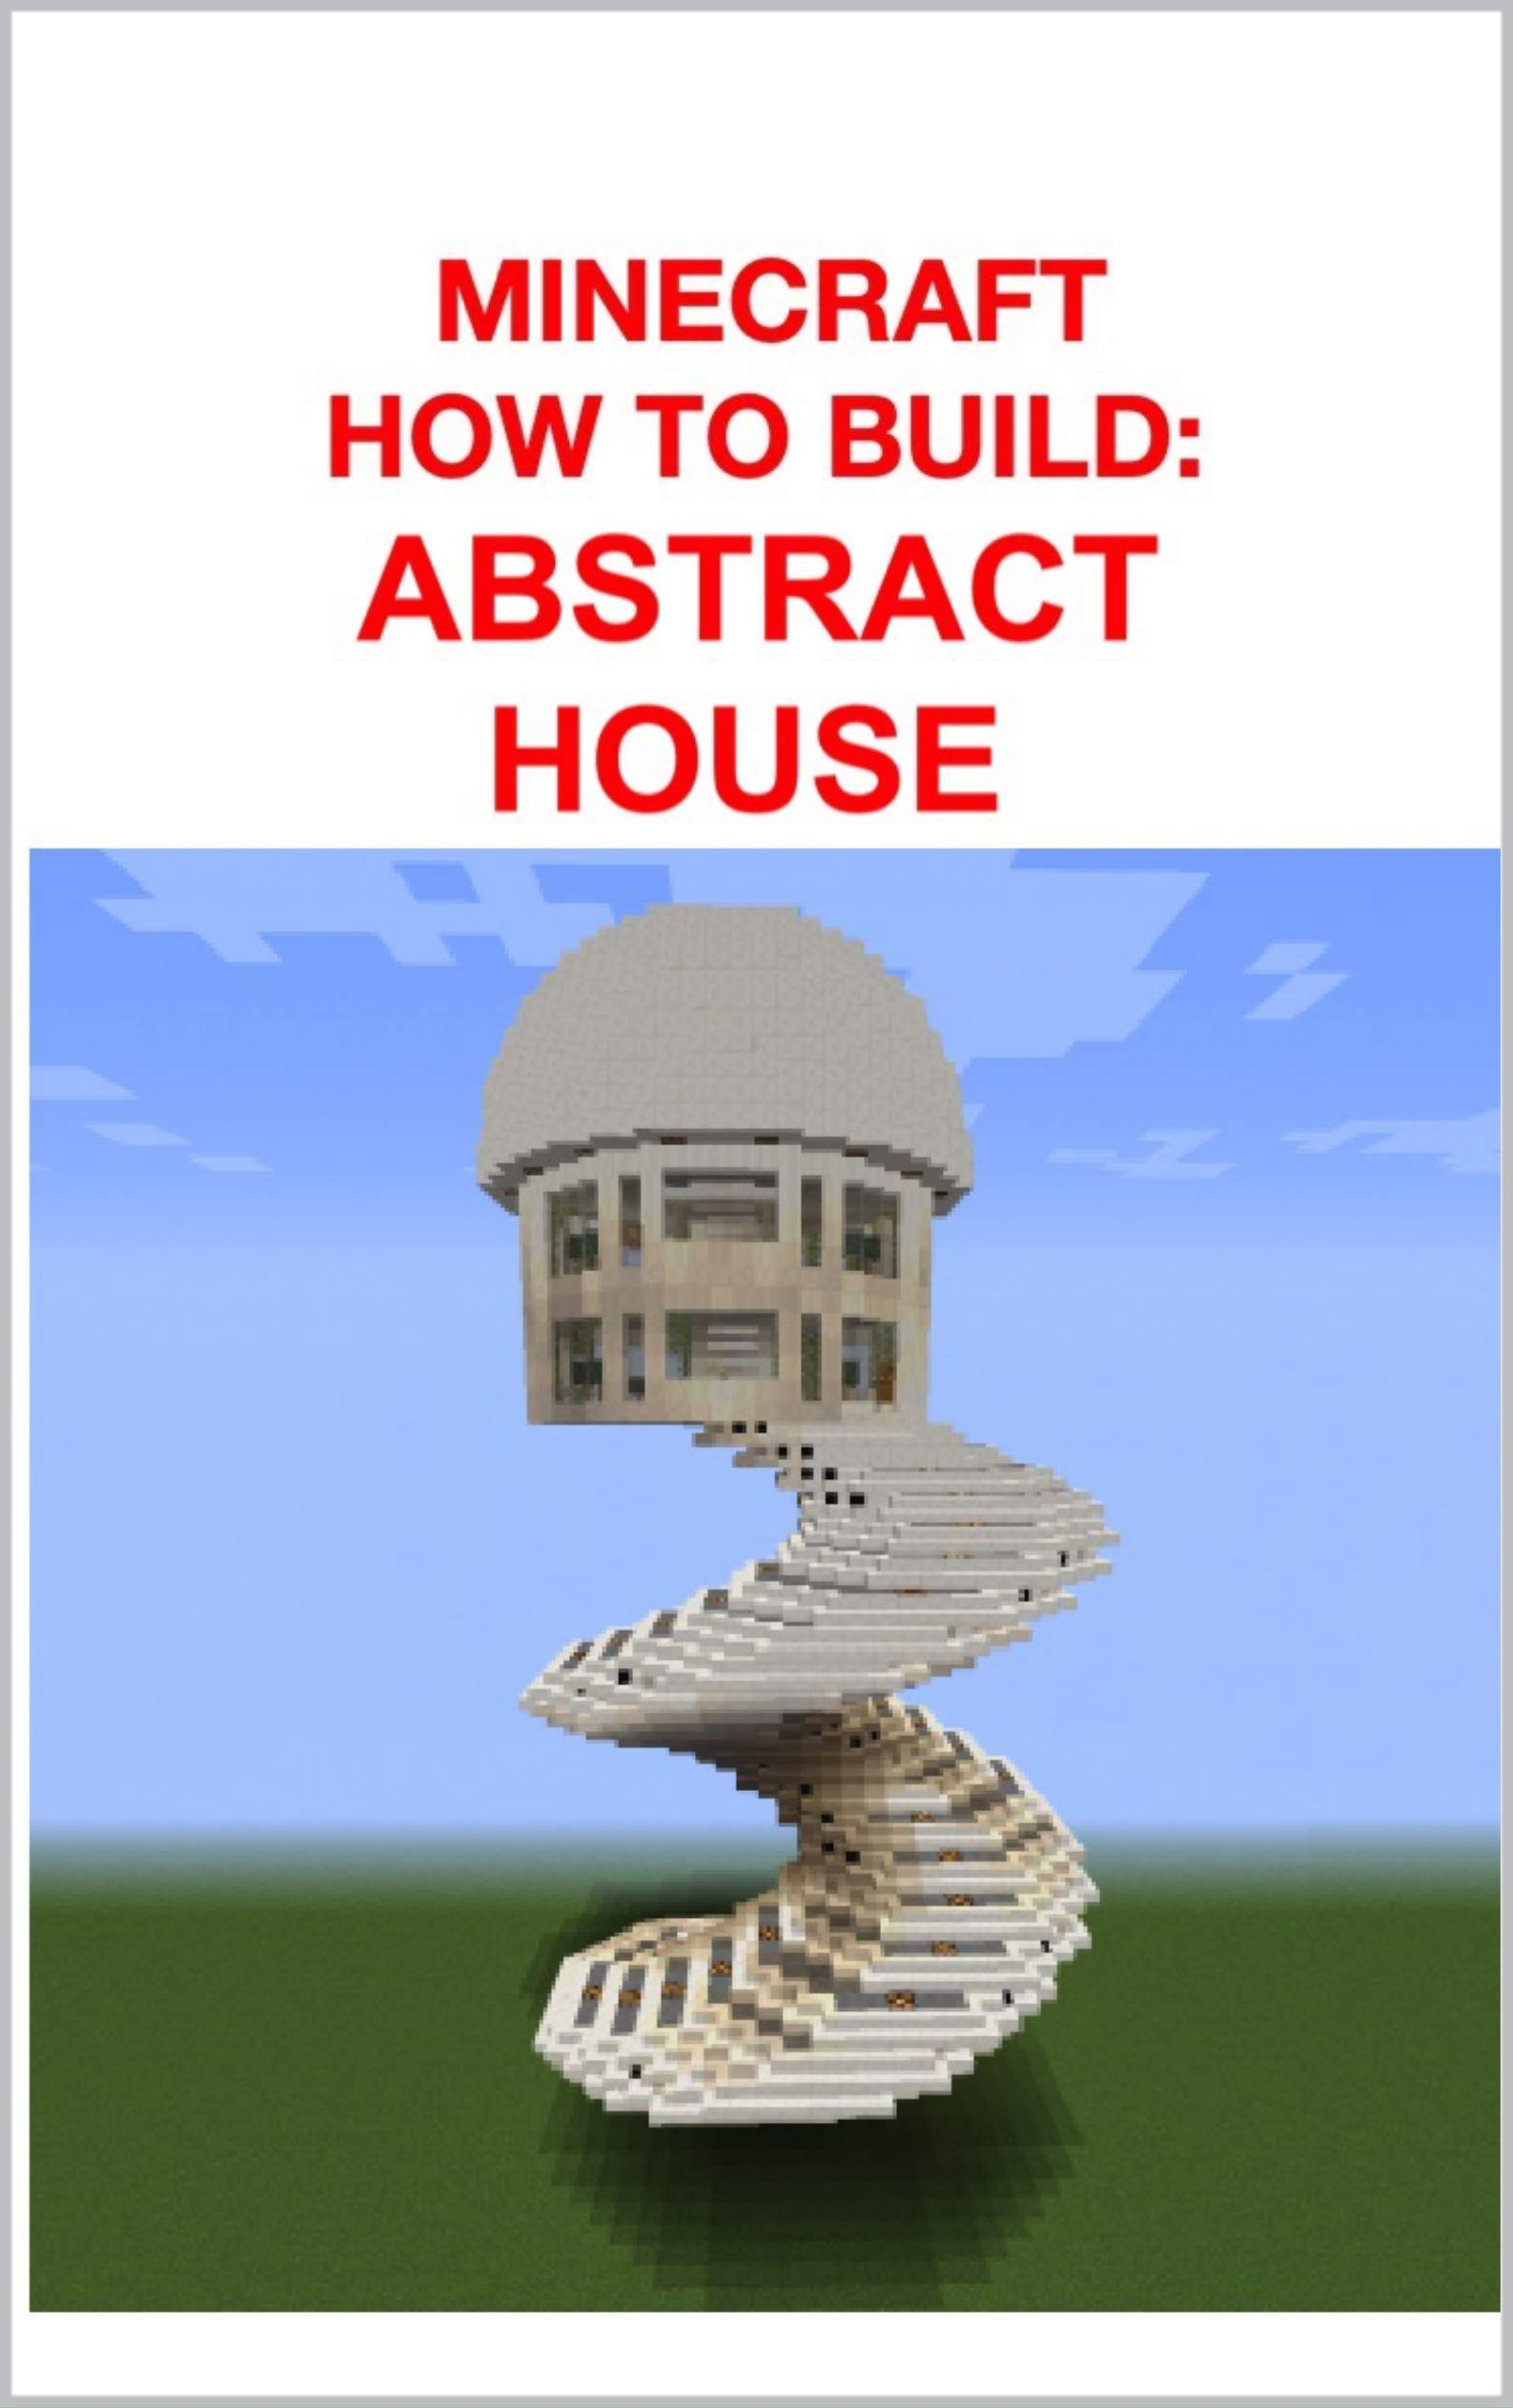 MINECRAFT HOW TO BUILD UNFURNISHED FANTASY ABSTRACT HOUSE: EXCLUSIVE VERSION, TIPS FROM THE GAME PLAYERS HAVE NO IDEA ABOUT (369)